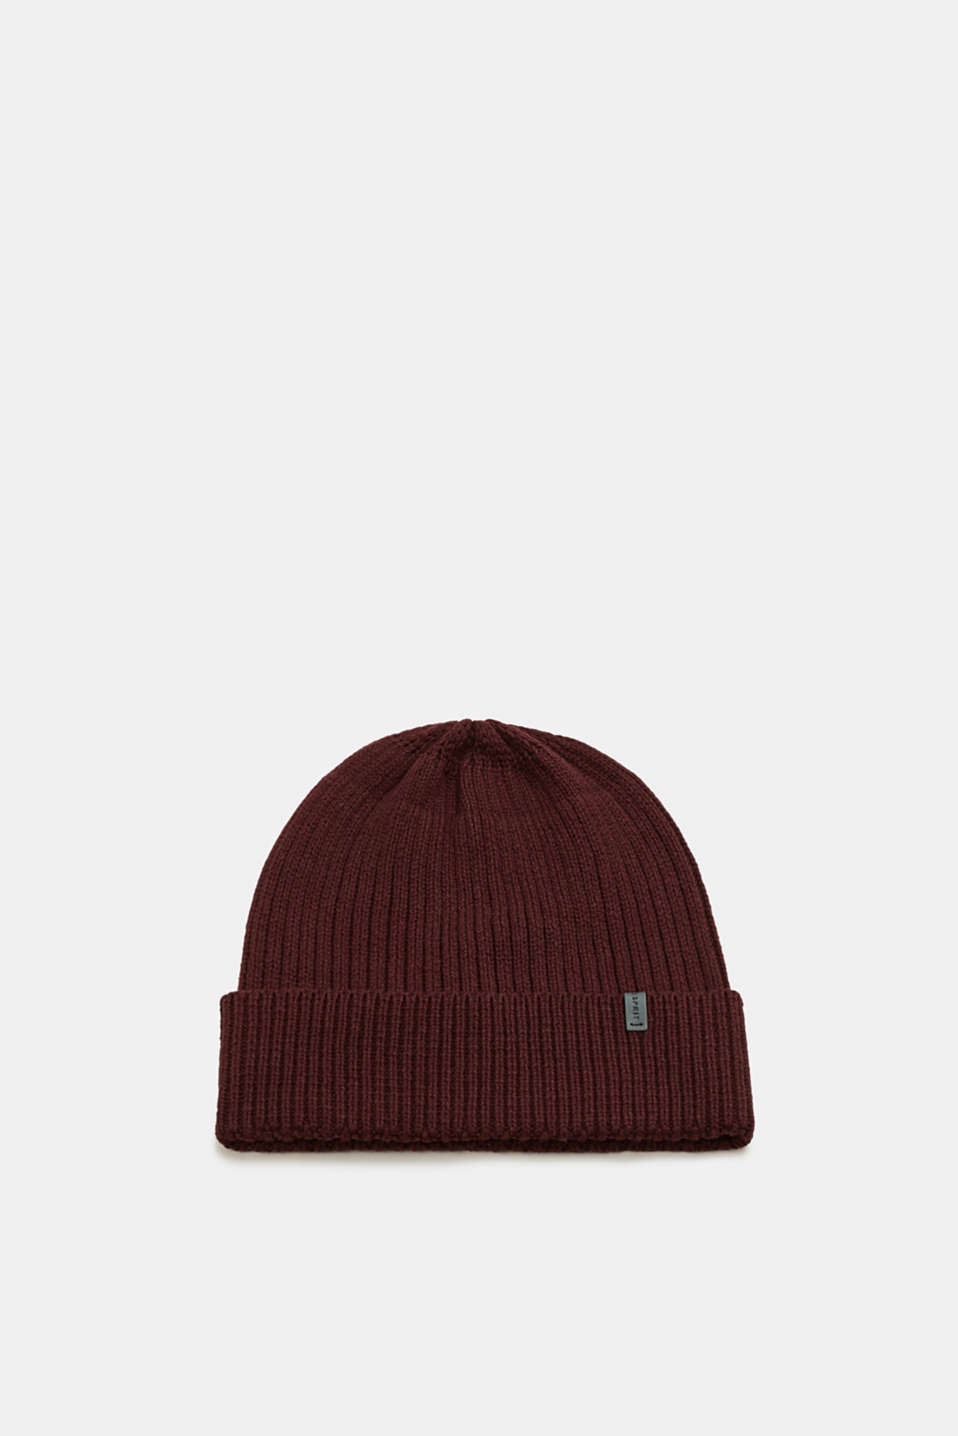 Esprit - Rib knit cap made of blended cotton